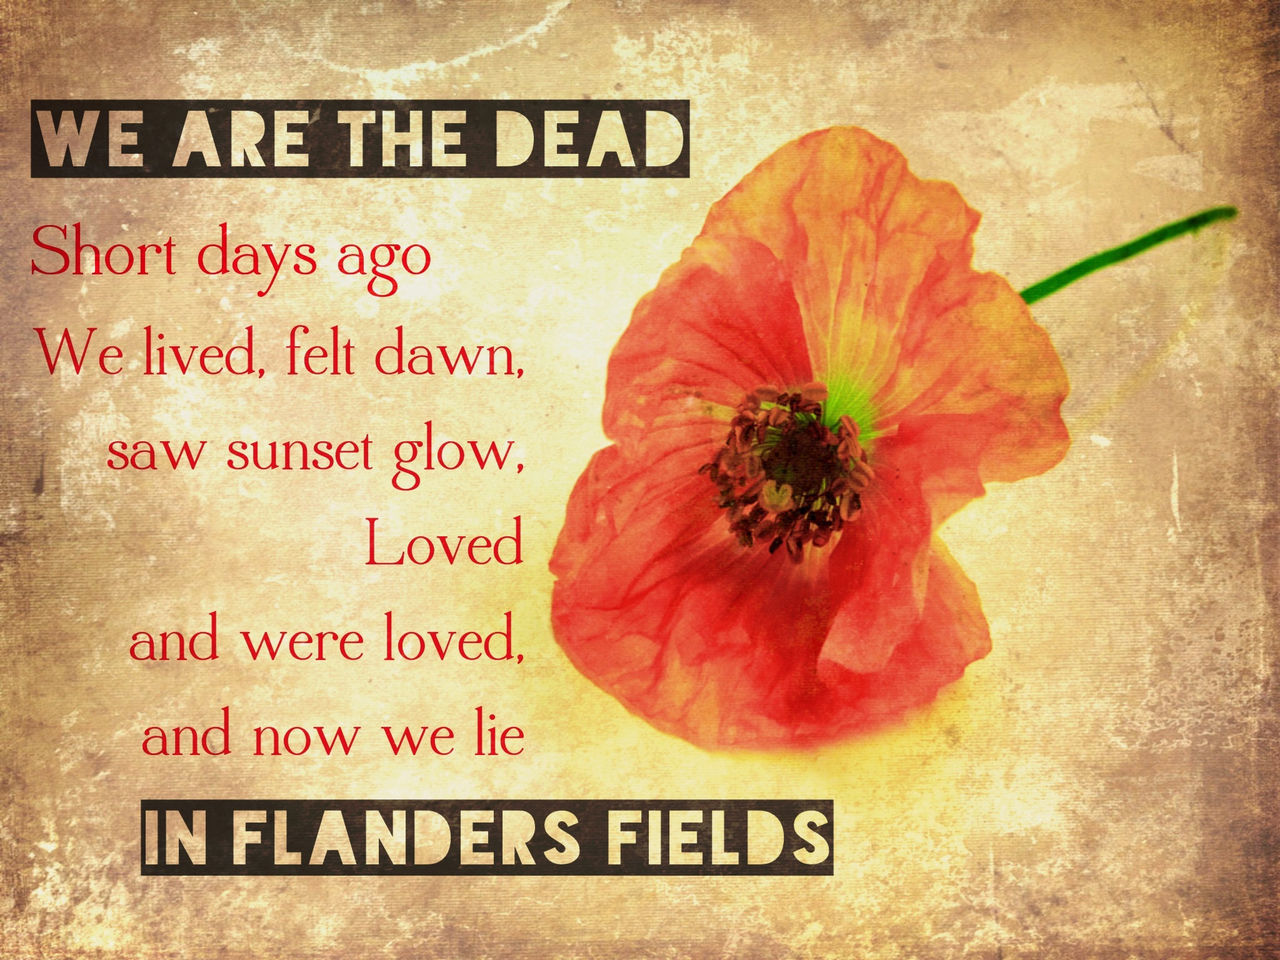 The Somme-100 years. The poem was written by Major John McCrae after the death of a friend at Ypres, another bloody battlefield of the Great War. Still a poem that makes the soldiers human no matter which battle. Death Flower Flower Head Never Forget Poppy Poppy Flowers Red Remember Remembering Remembrance Text The Great War War World War 1 Lestweforget